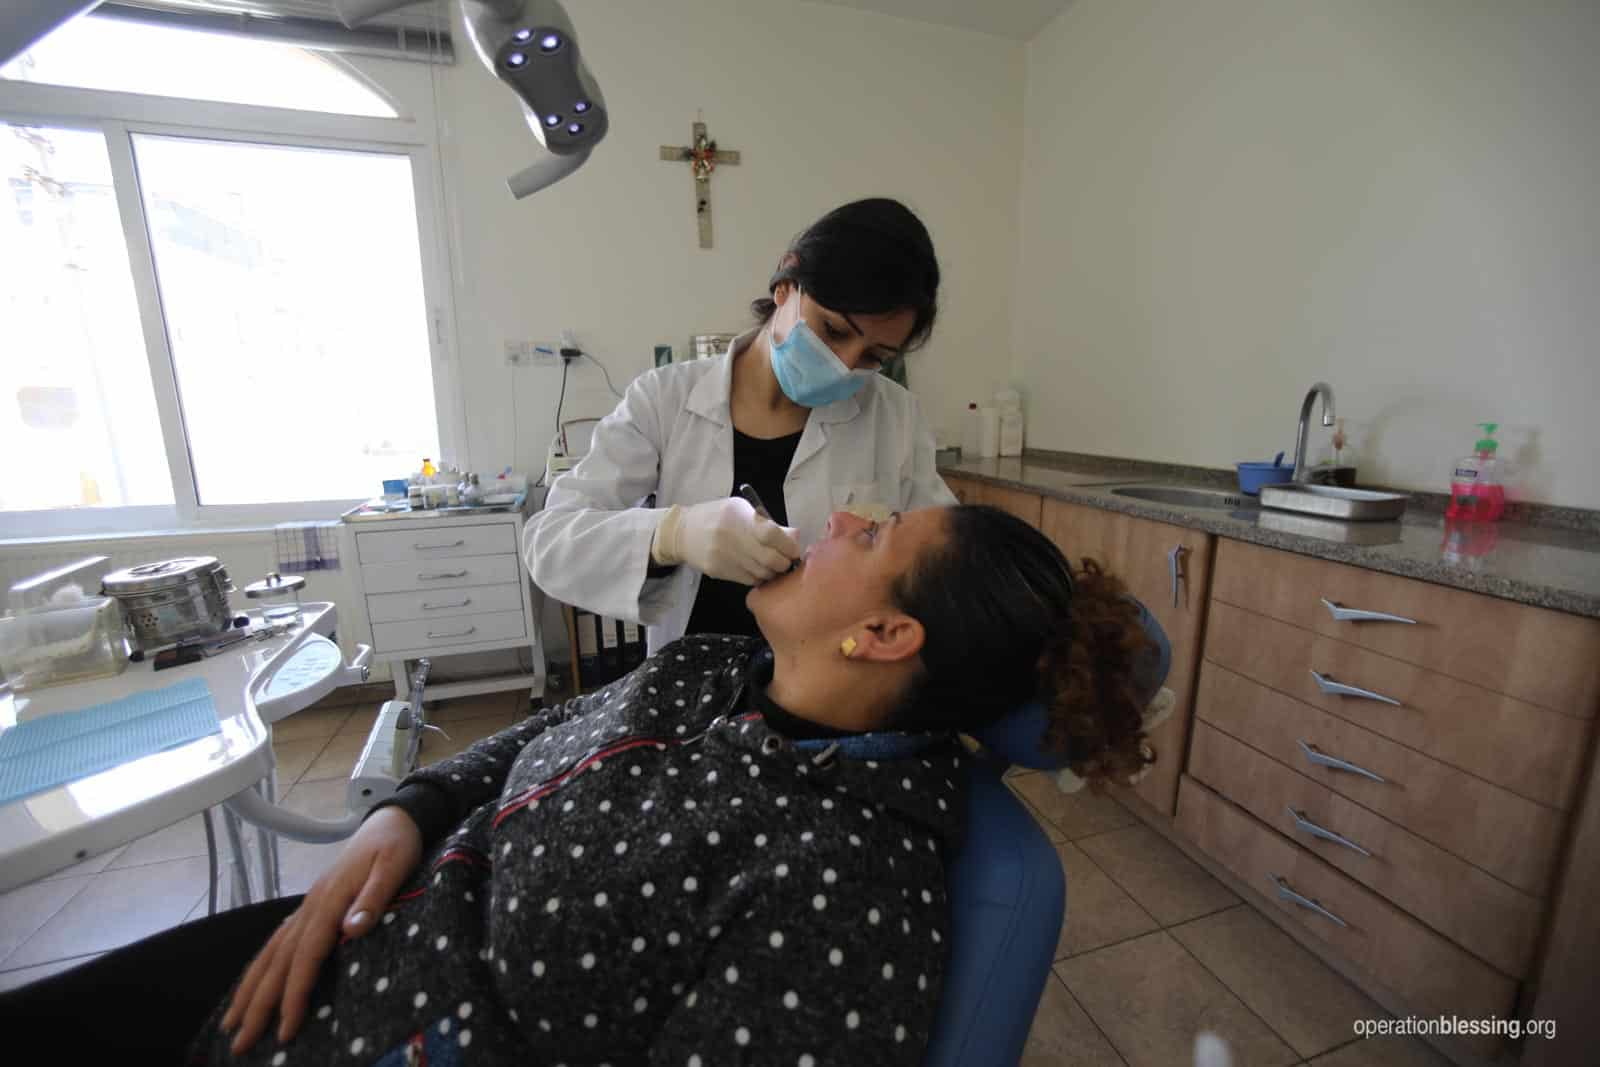 A woman receives a dental checkup at a medical clinic for Christian refugees supported by Operation Blessing.